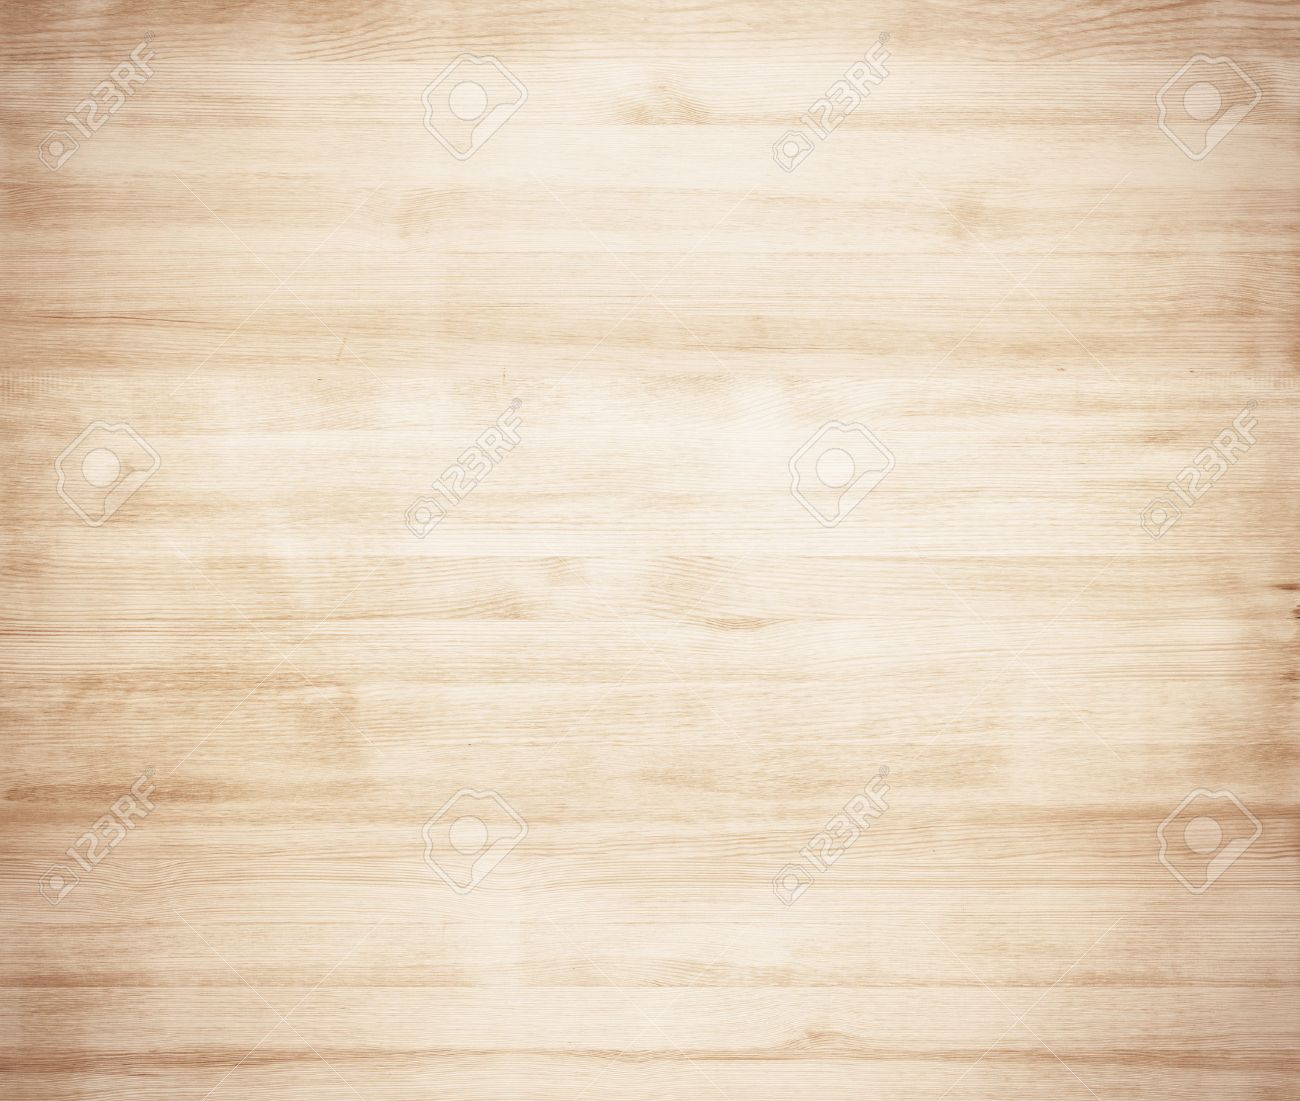 Soft Wooden Texture Empty Wood Background Stock Photo Picture 1300x1101